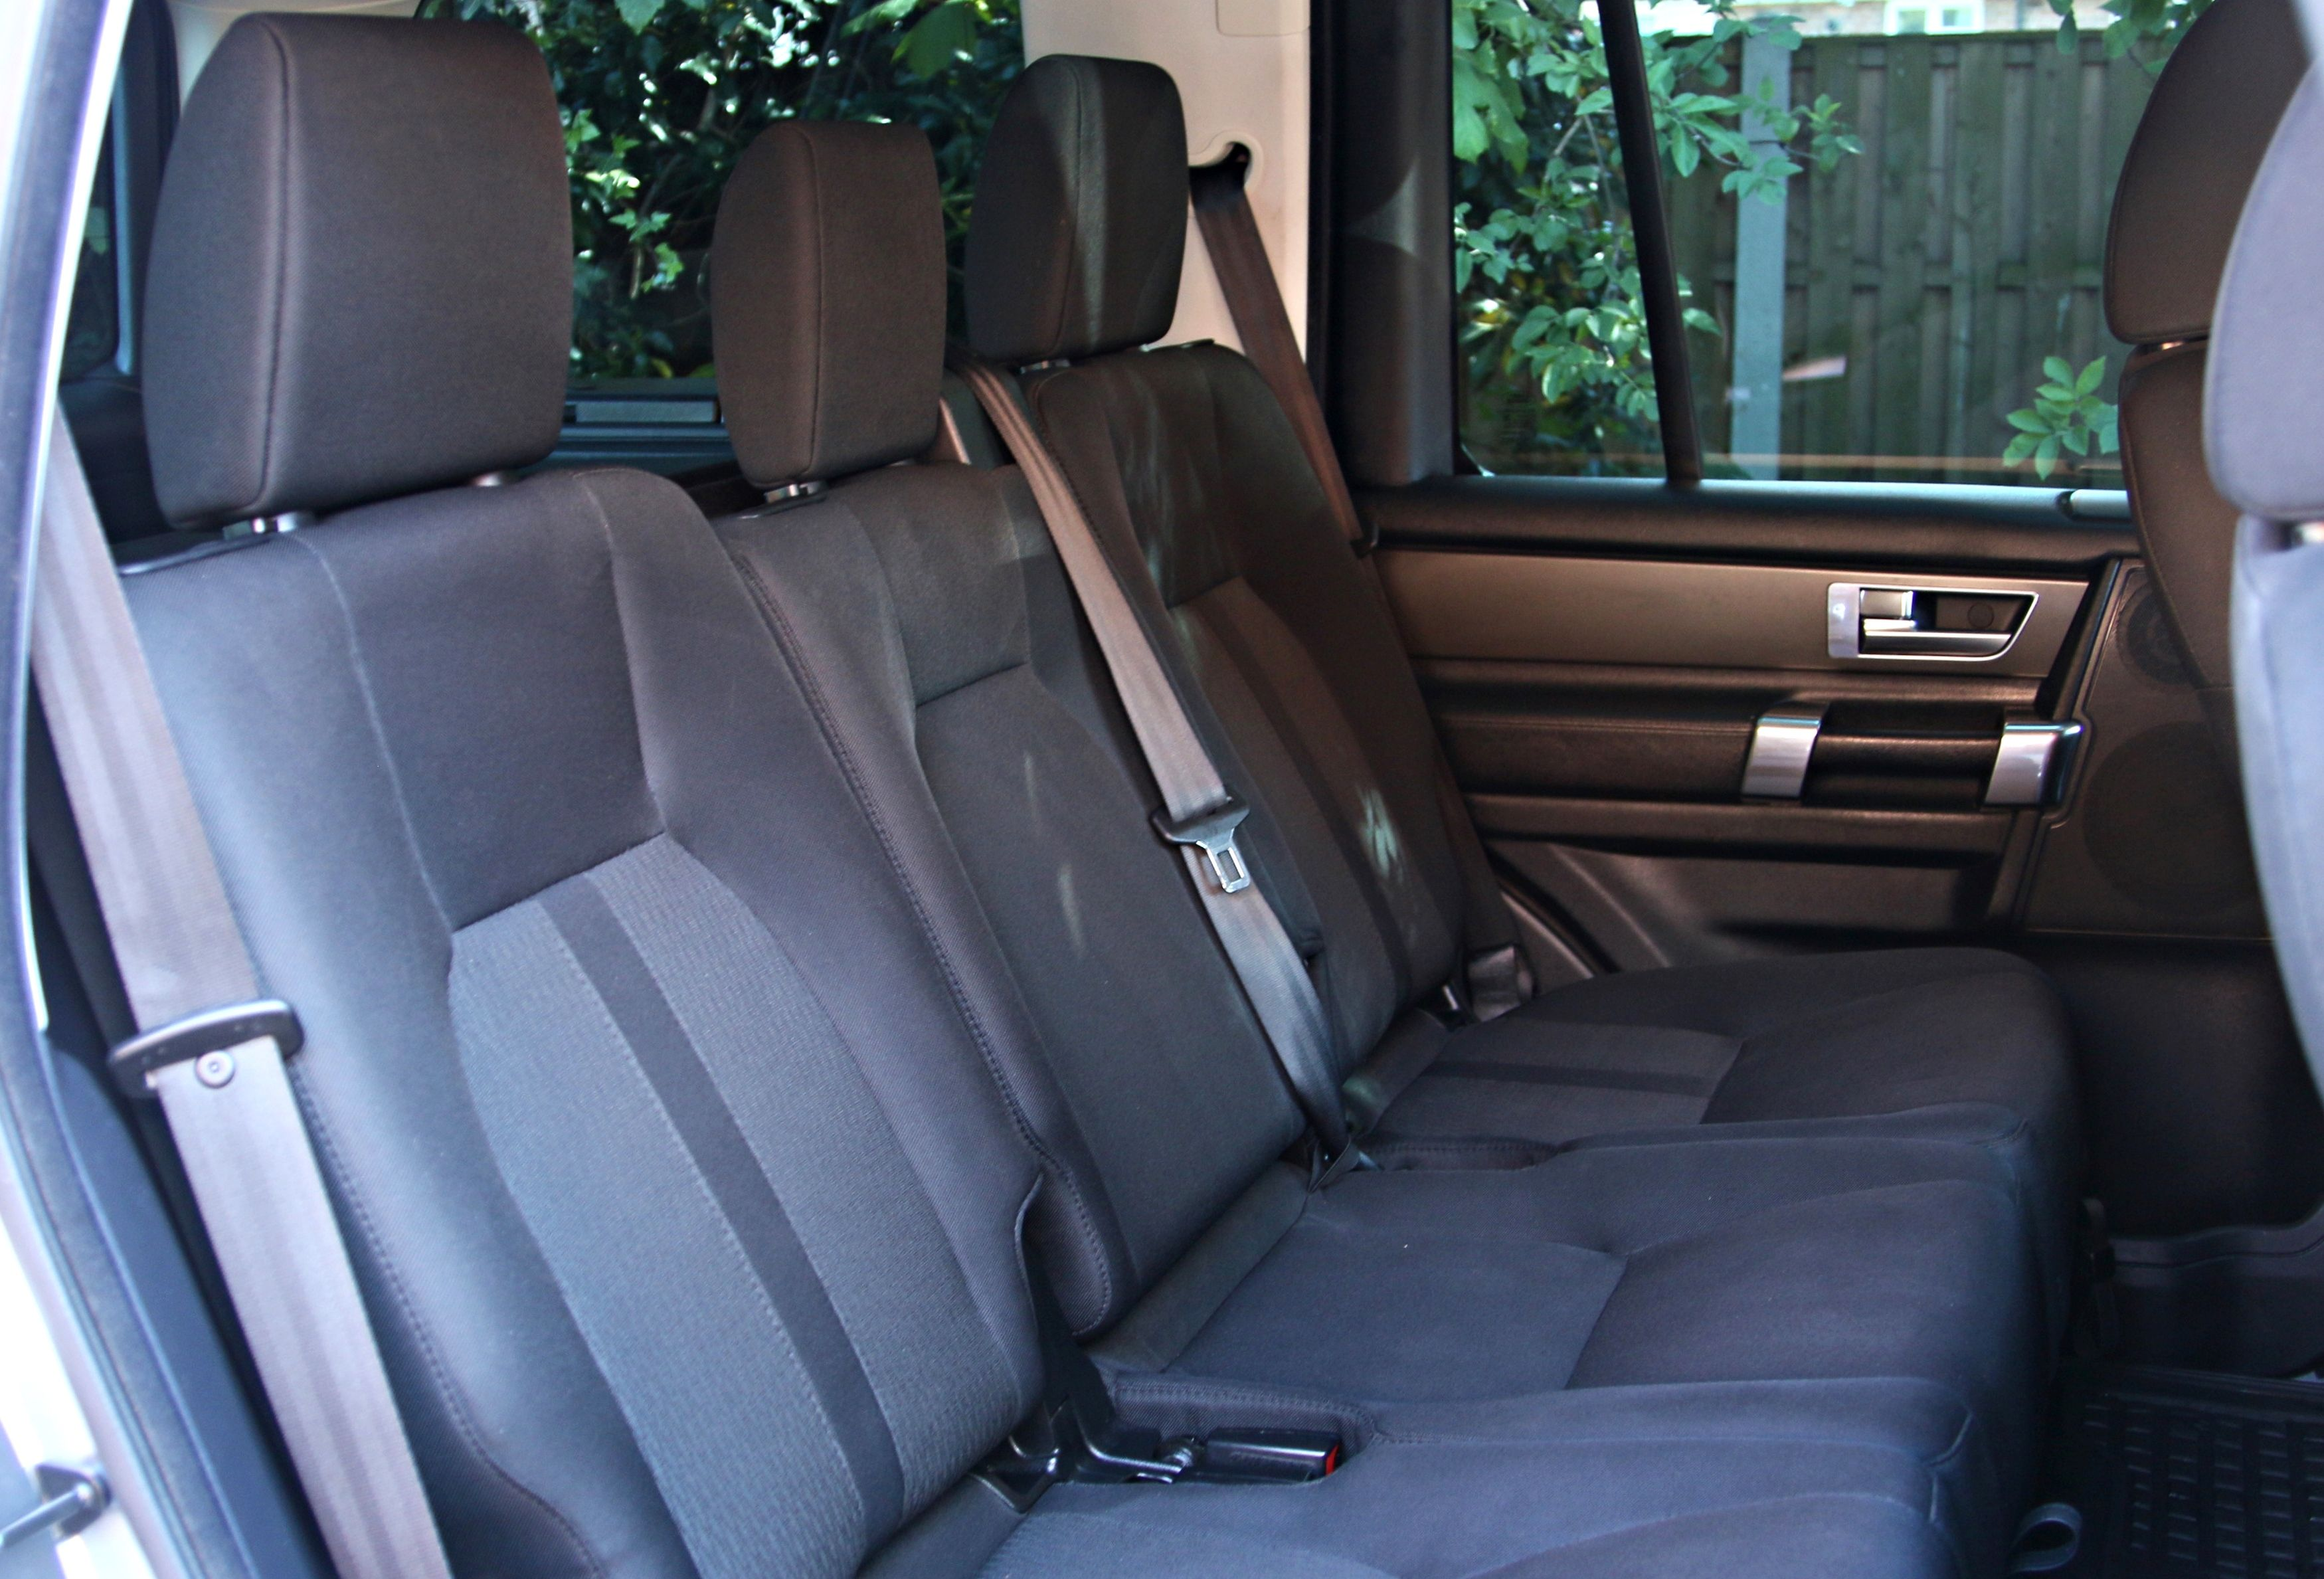 Rear Seat Conversions for Used Land Rover Commercial Discovery 4 using Genuine Land Rover Cloth Rear Seats with Isofix (from the 2009-2015 model) - £1,650+VAT